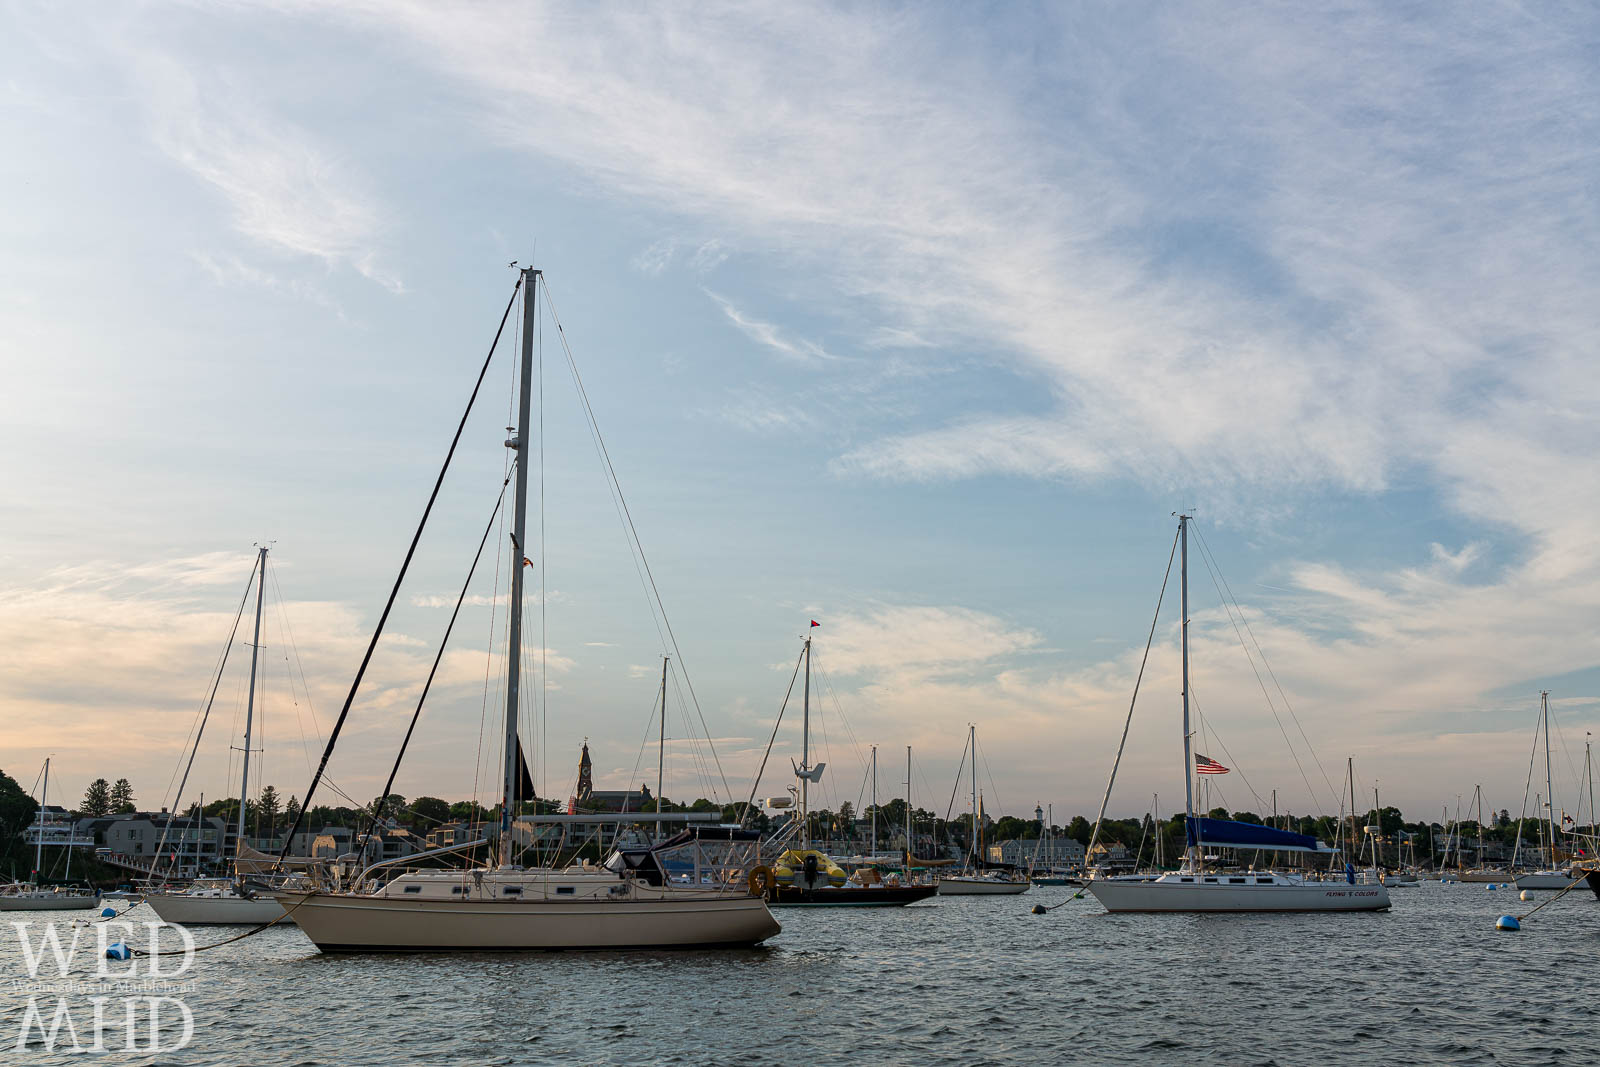 A boat named Flying Colors is captured with the flag flying on a warm summer evening in Marblehead harbor